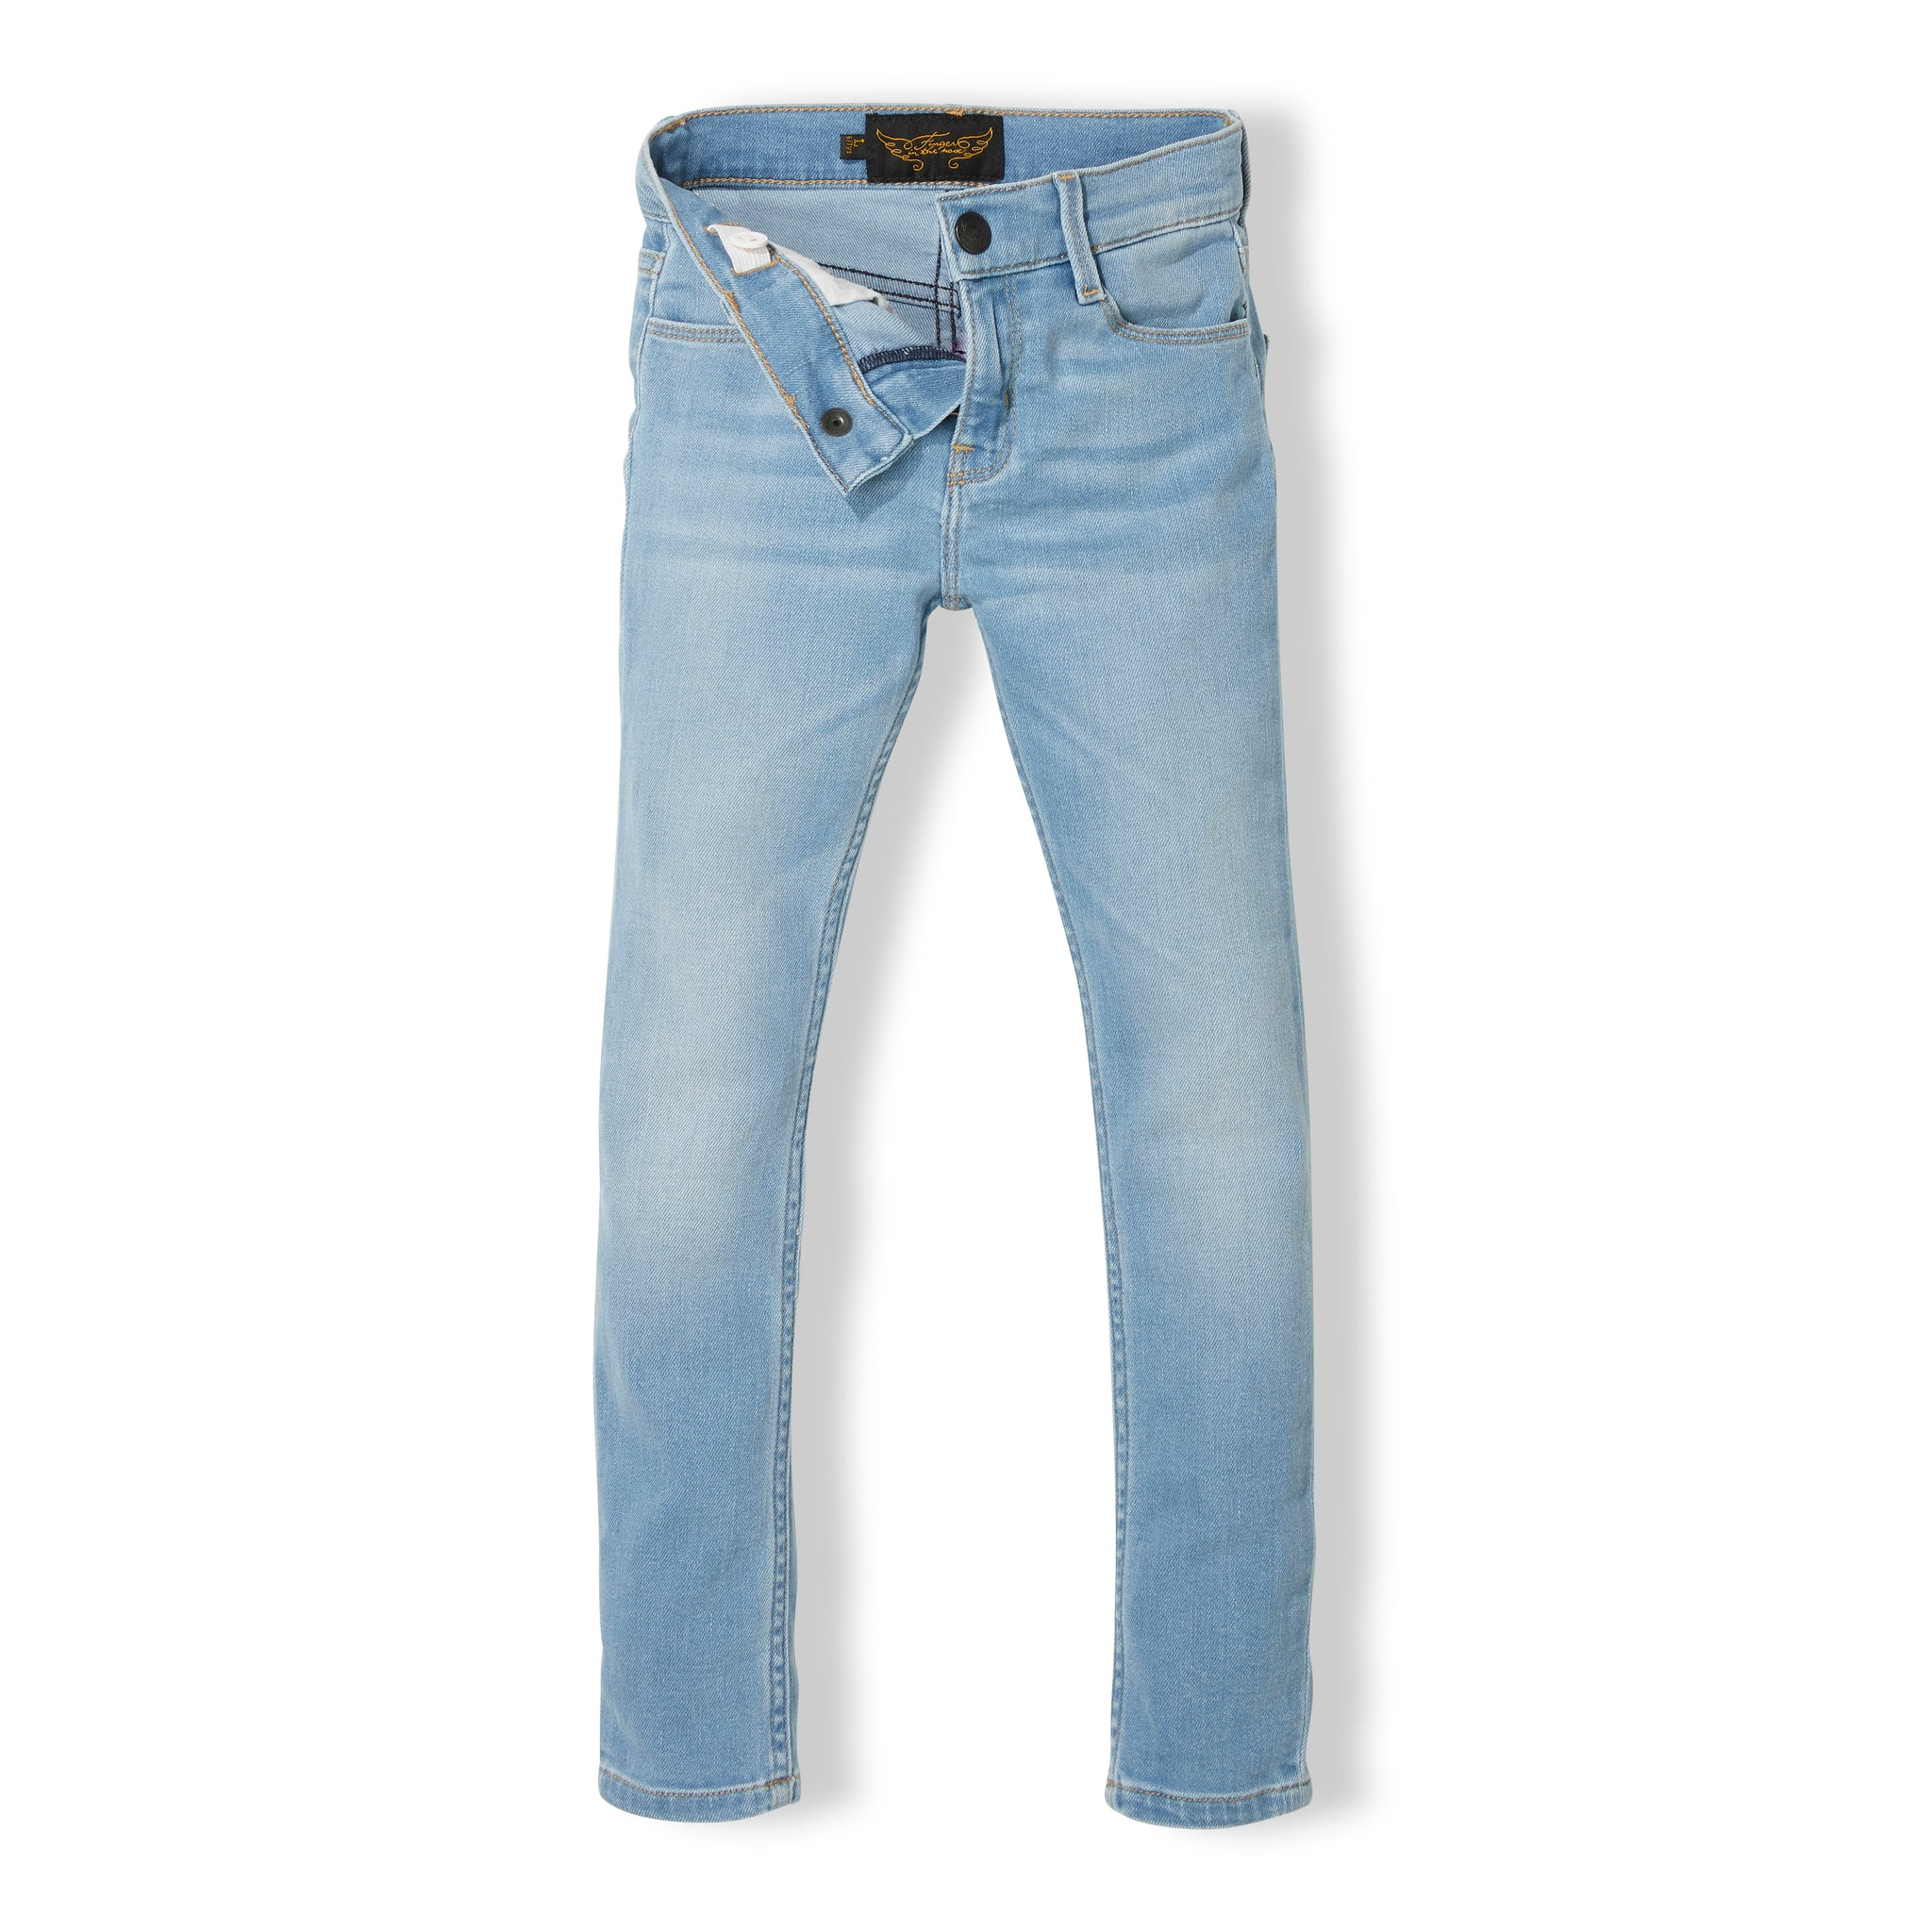 TAMA Bleached Blue - Girl Woven Skinny Fit Jeans 2